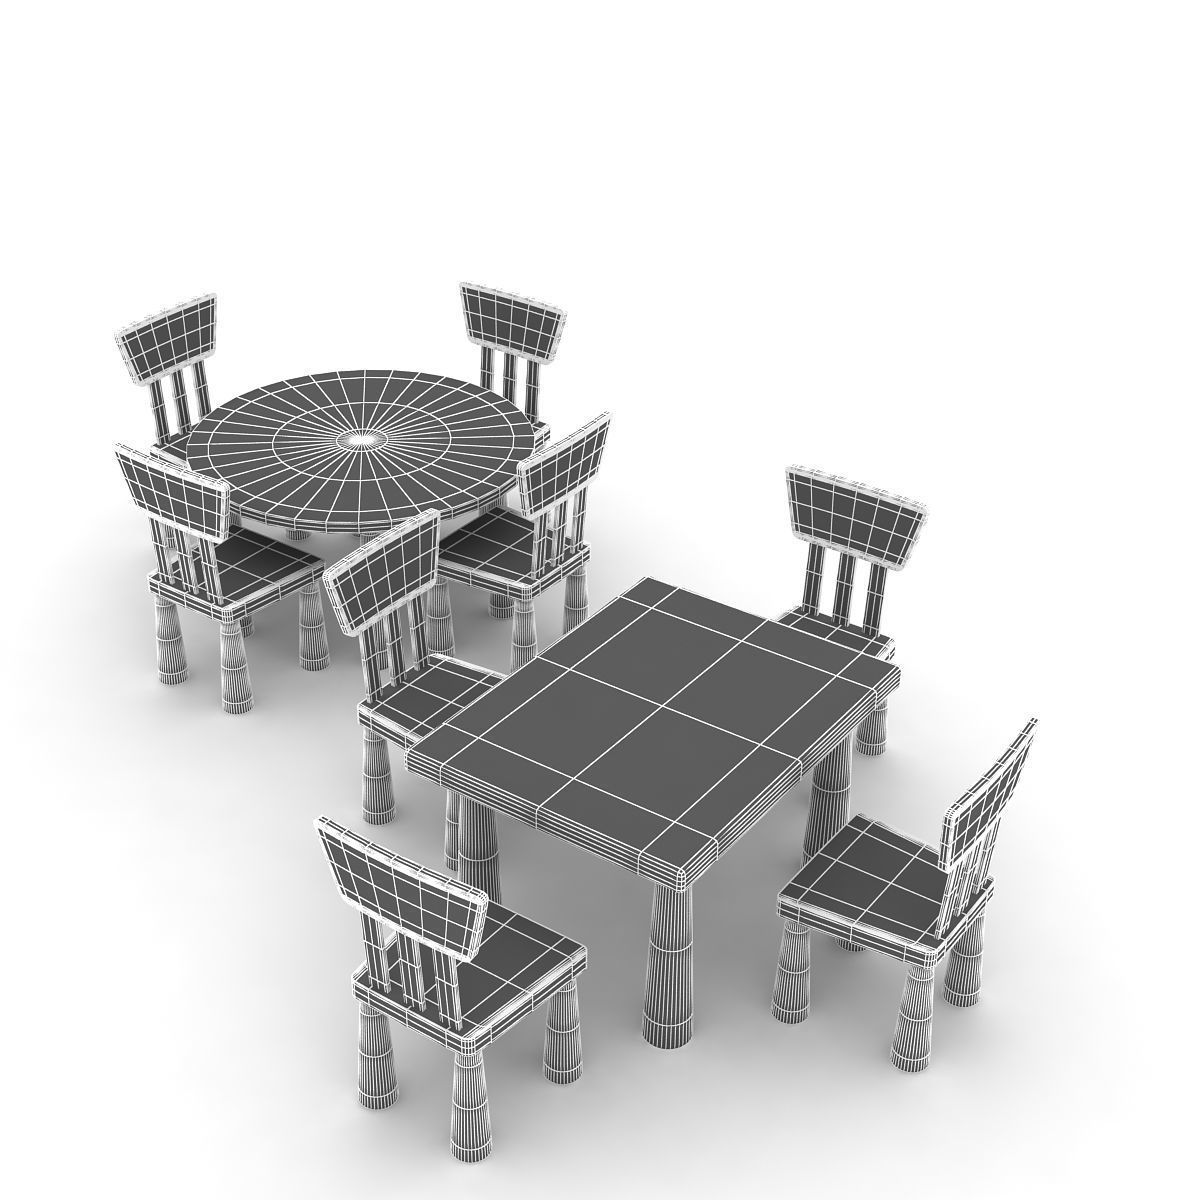 Ikea Mammut Chairs And Table 3d Cgtrader # Muebles Mammut Ikea